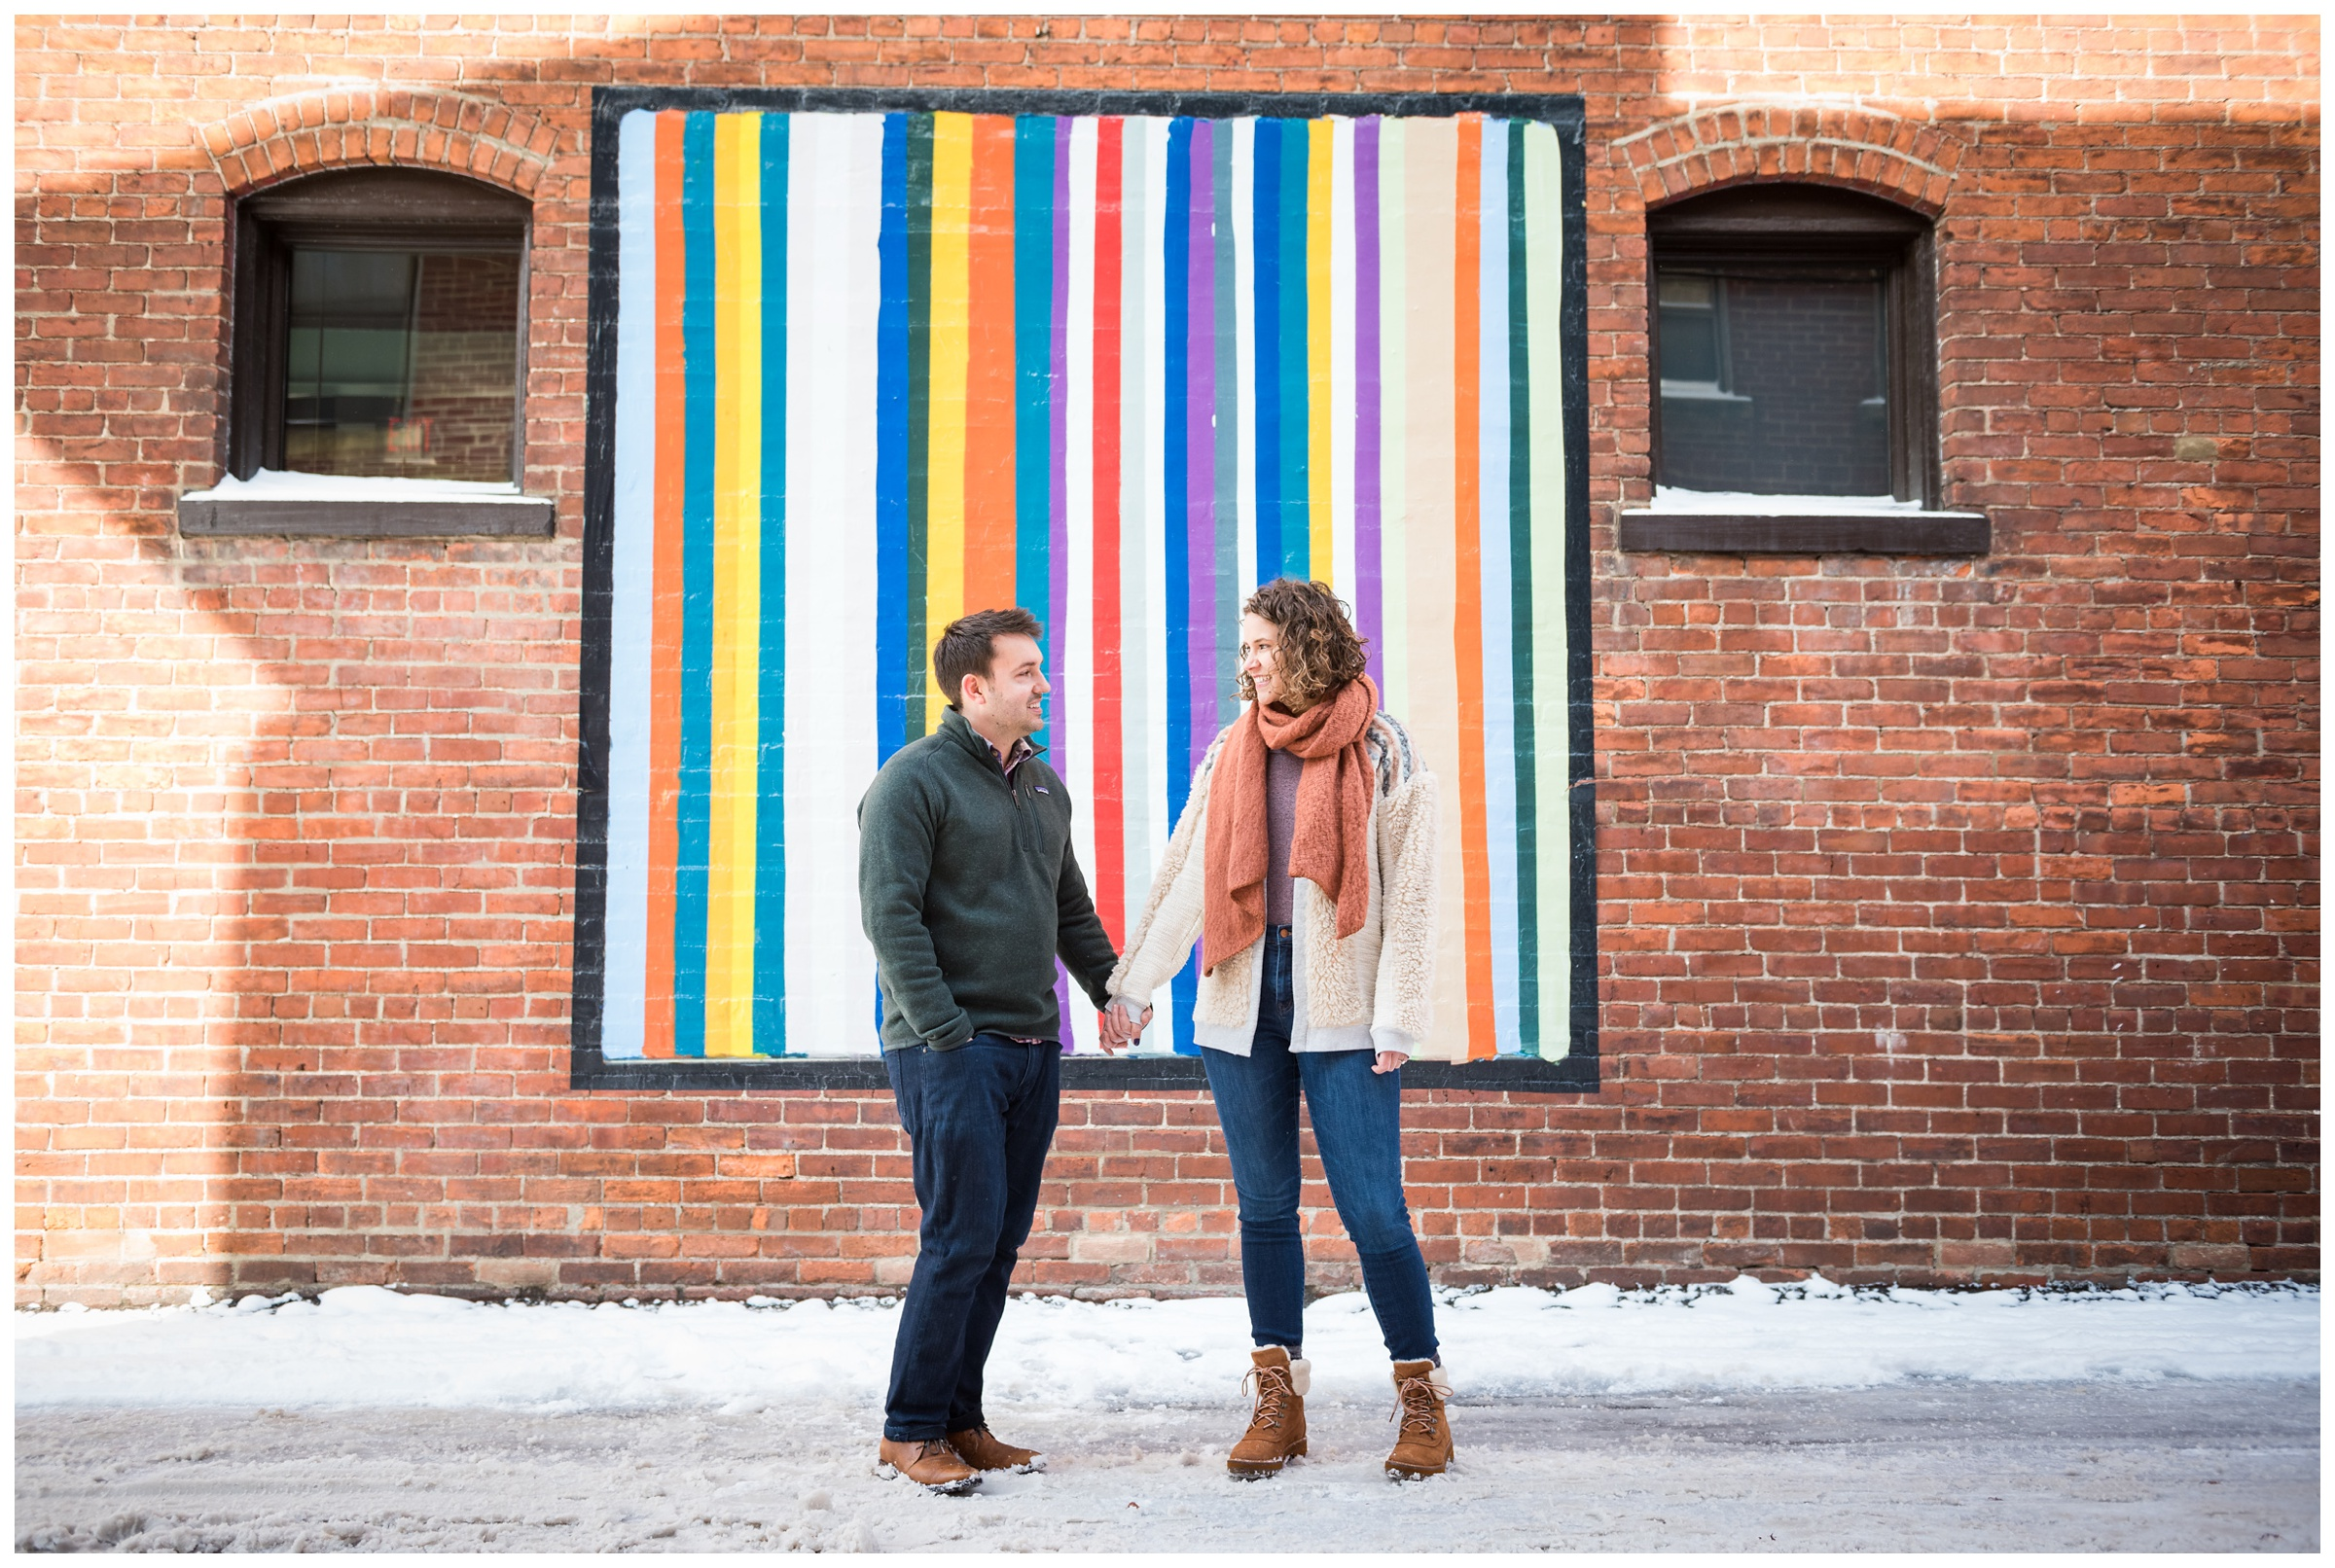 winter engagement photos in front of brick wall and mural in the Short North area of Columbus, Ohio